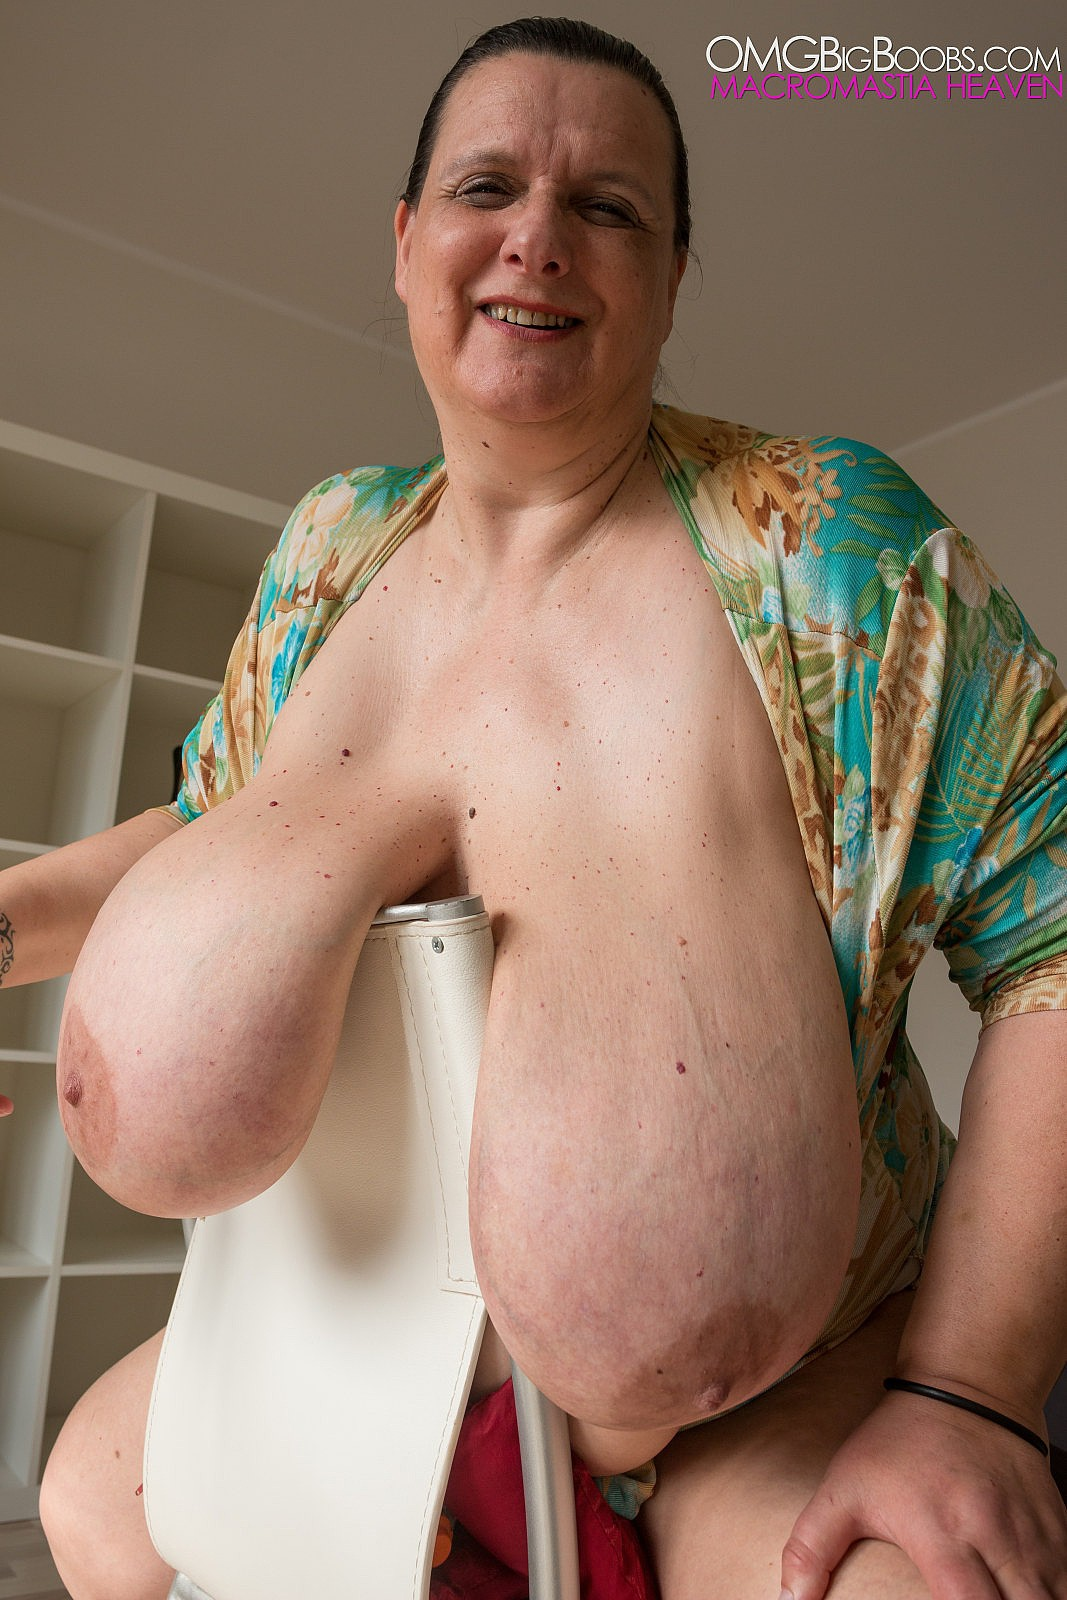 Older woman with large breasts